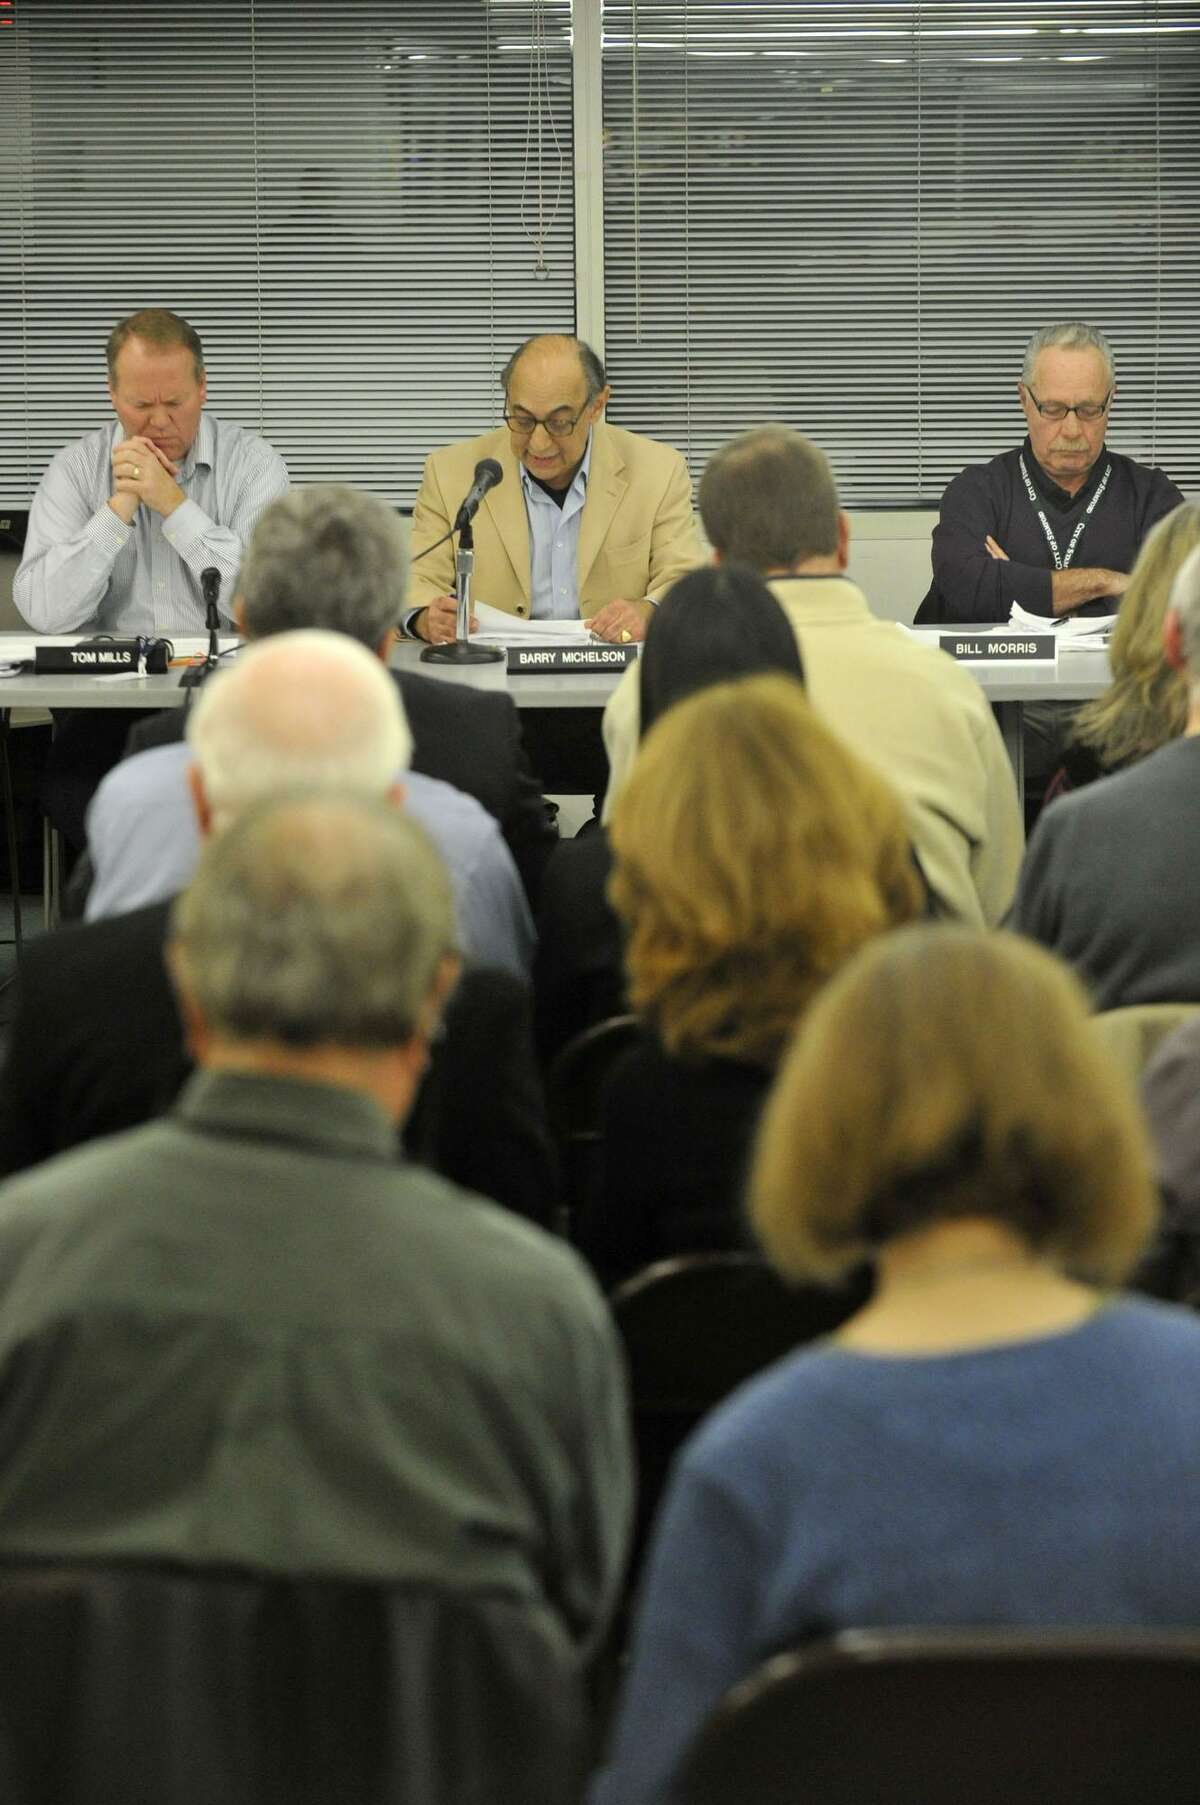 Zoning Board member Barry Michelson, top center, speaks as Chairman Tom Mills, left, and fellow board member Bill Morris, listen during the public hearing on the proposed redevelopment of the Stamford train station parking garage at the Stamford Government Center in November 2014.